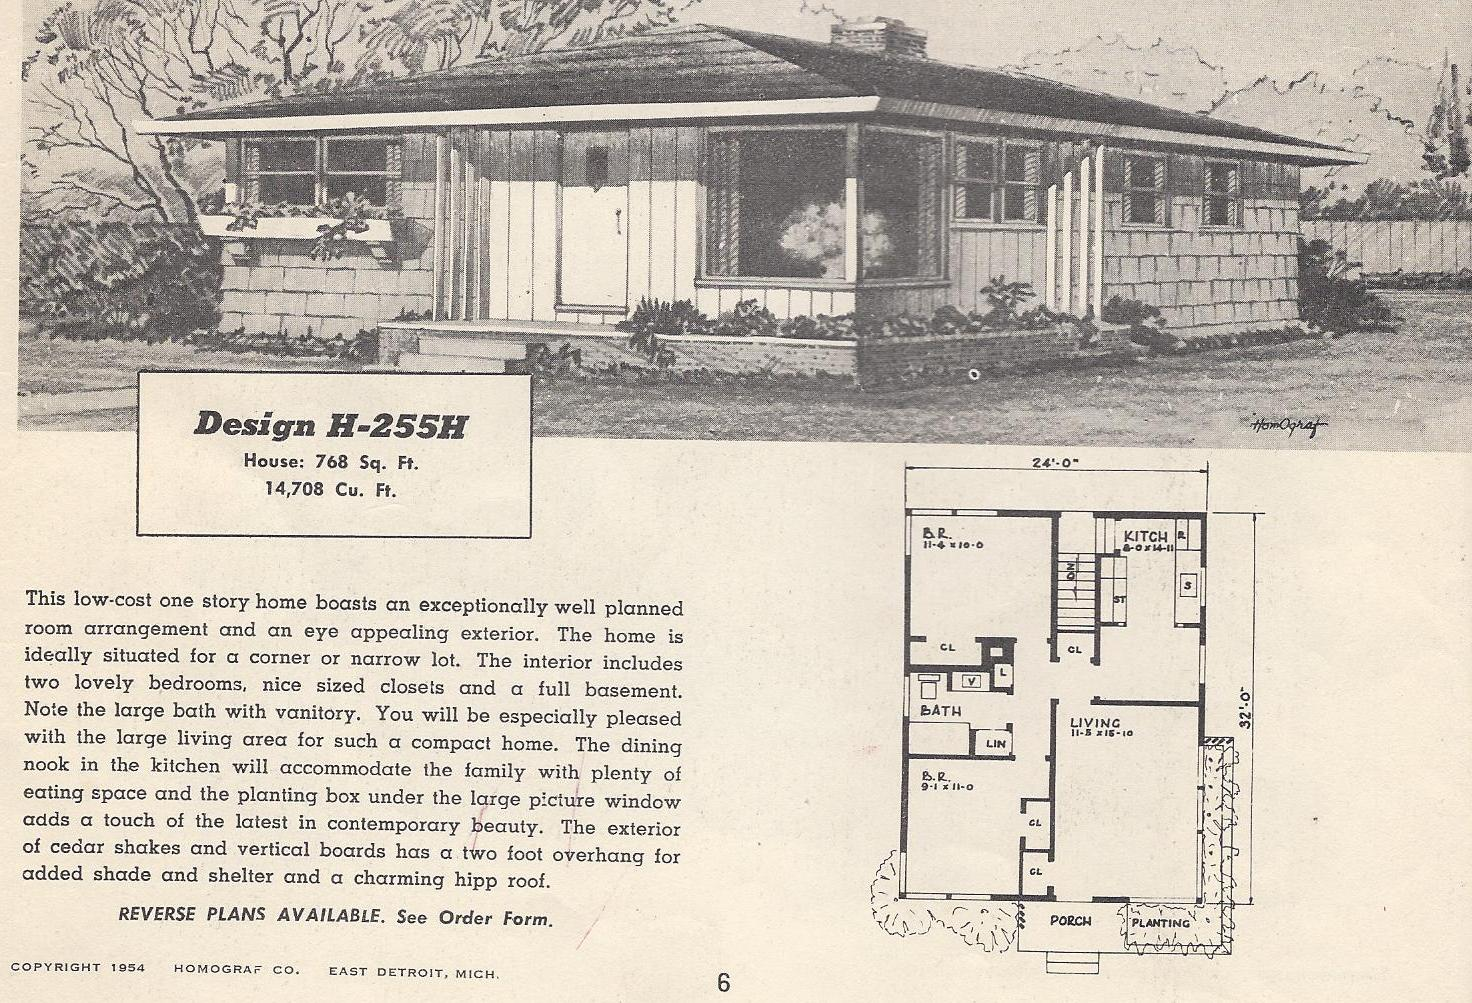 Vintage house plans 255h antique alter ego for Antique colonial house plans